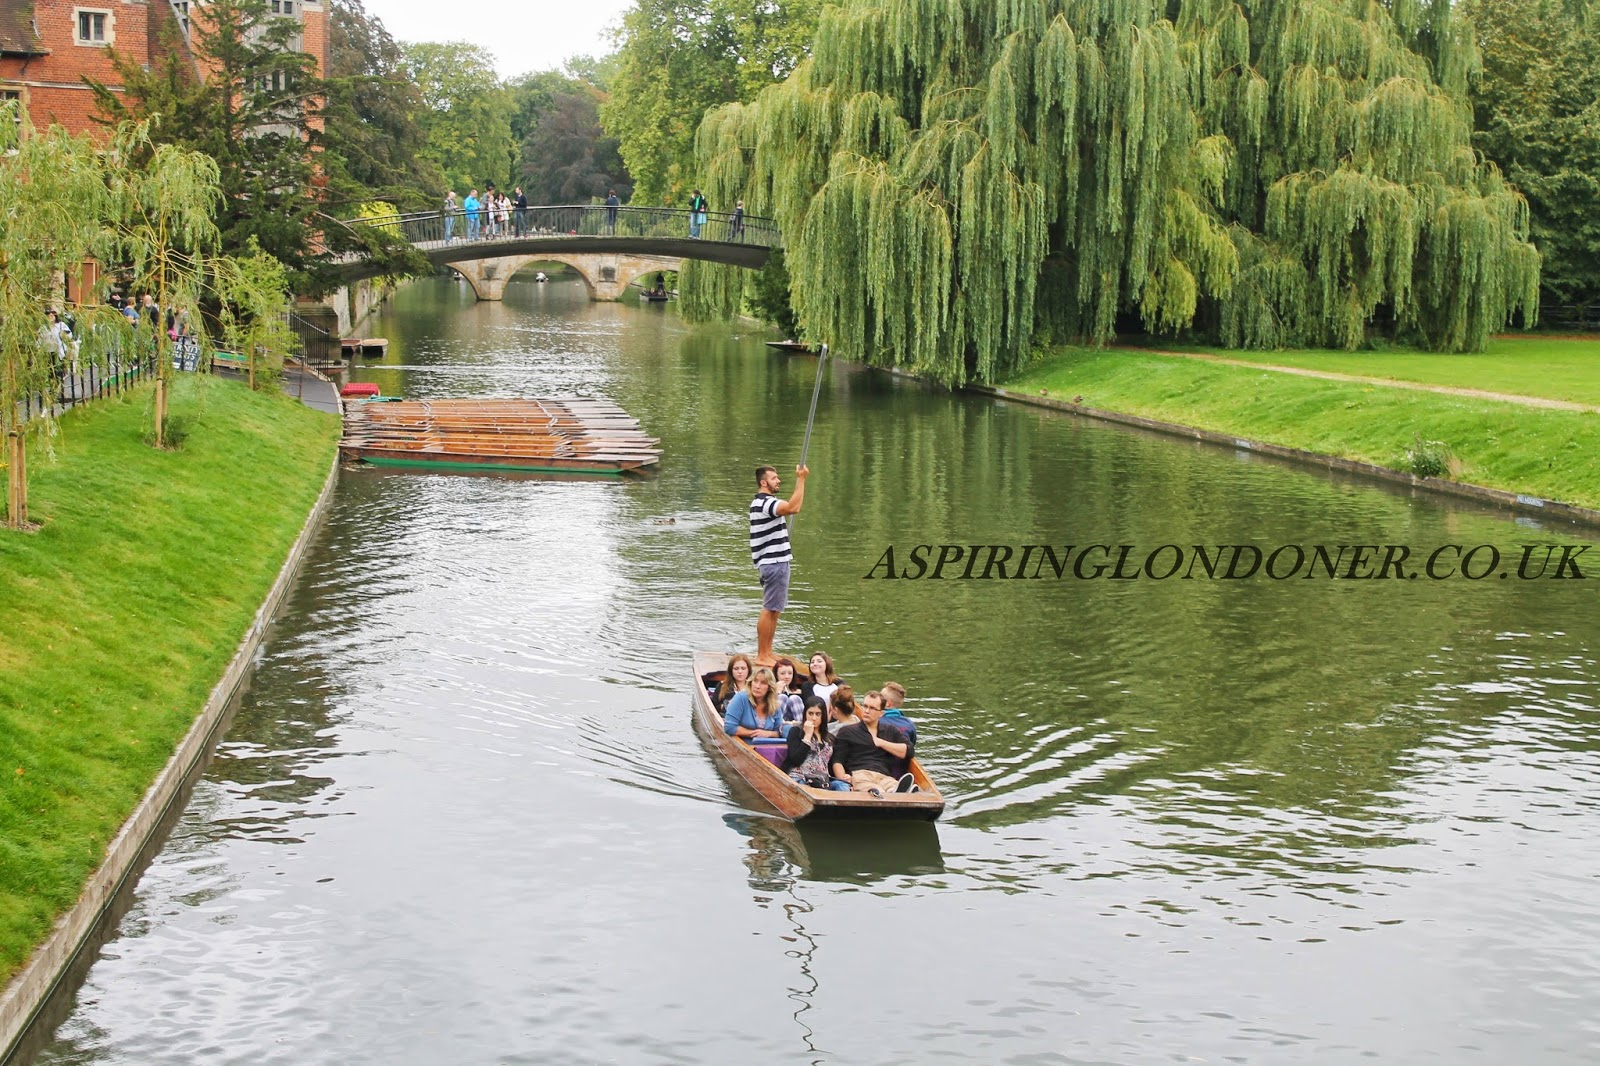 Punting on River Cam, Cambridge, UK - Aspiring Londoner